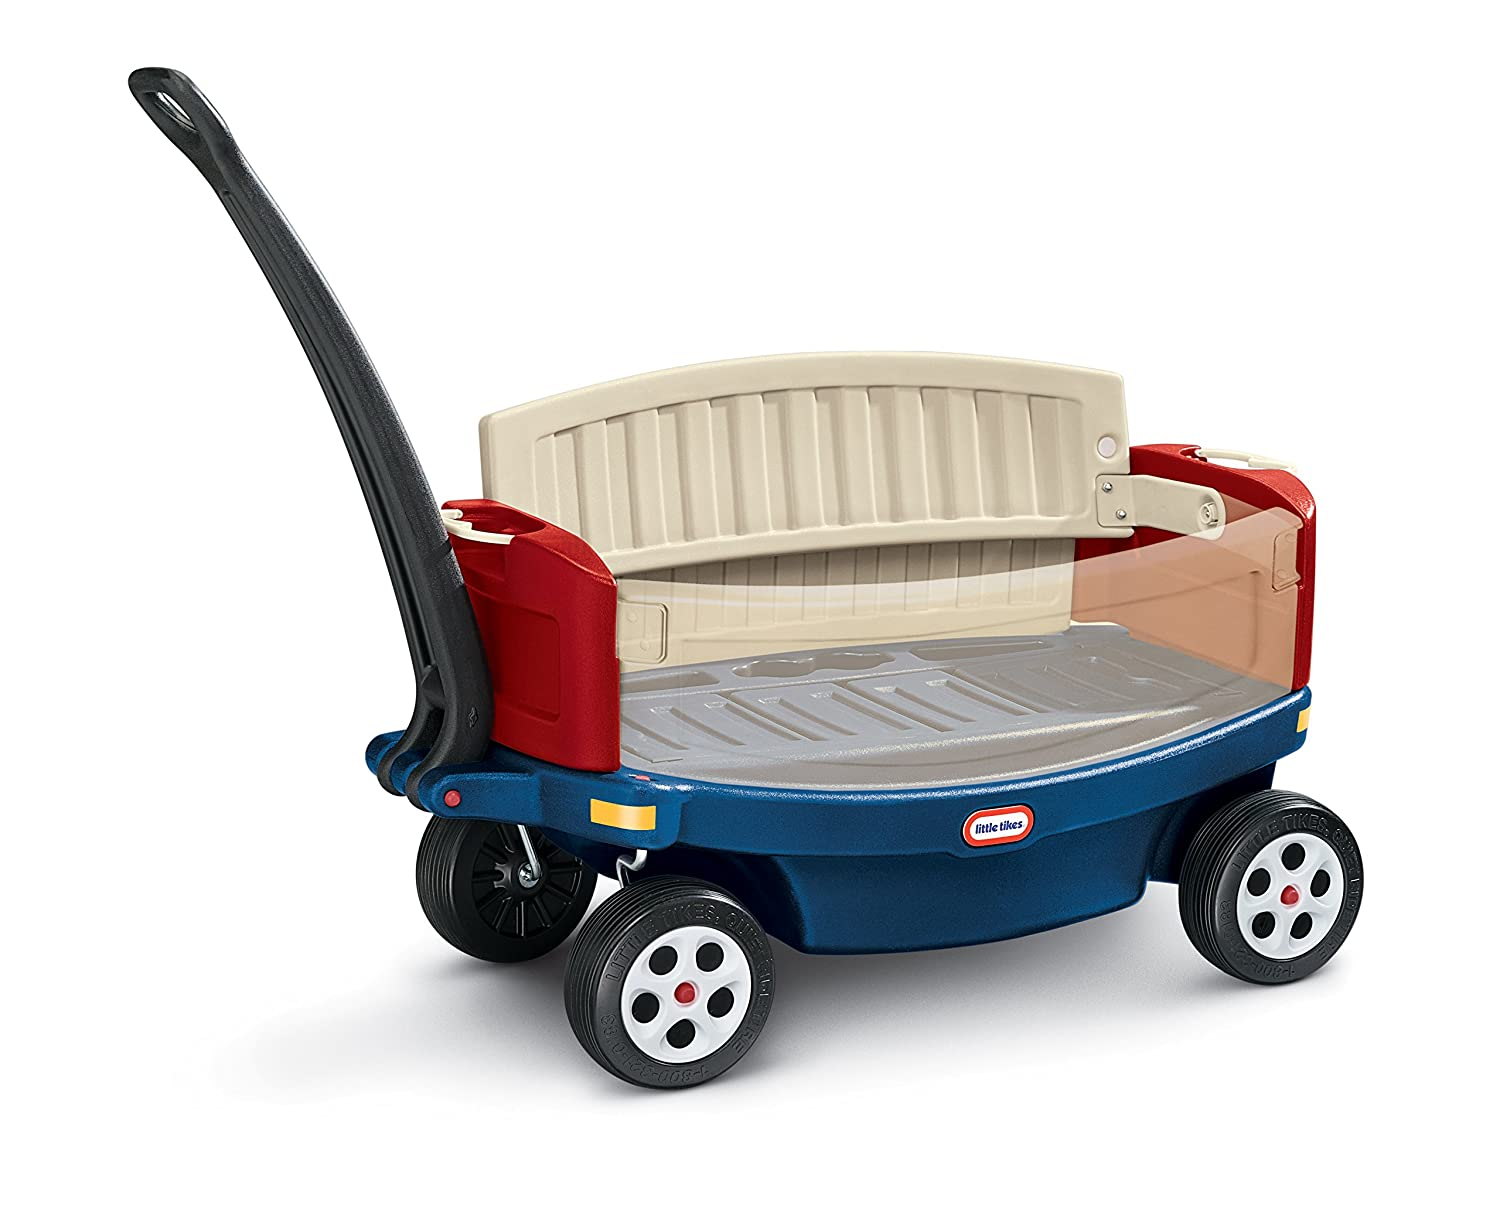 Little Tikes Ride On Toys : Amazon little tikes ride and relax wagon ride on toys games